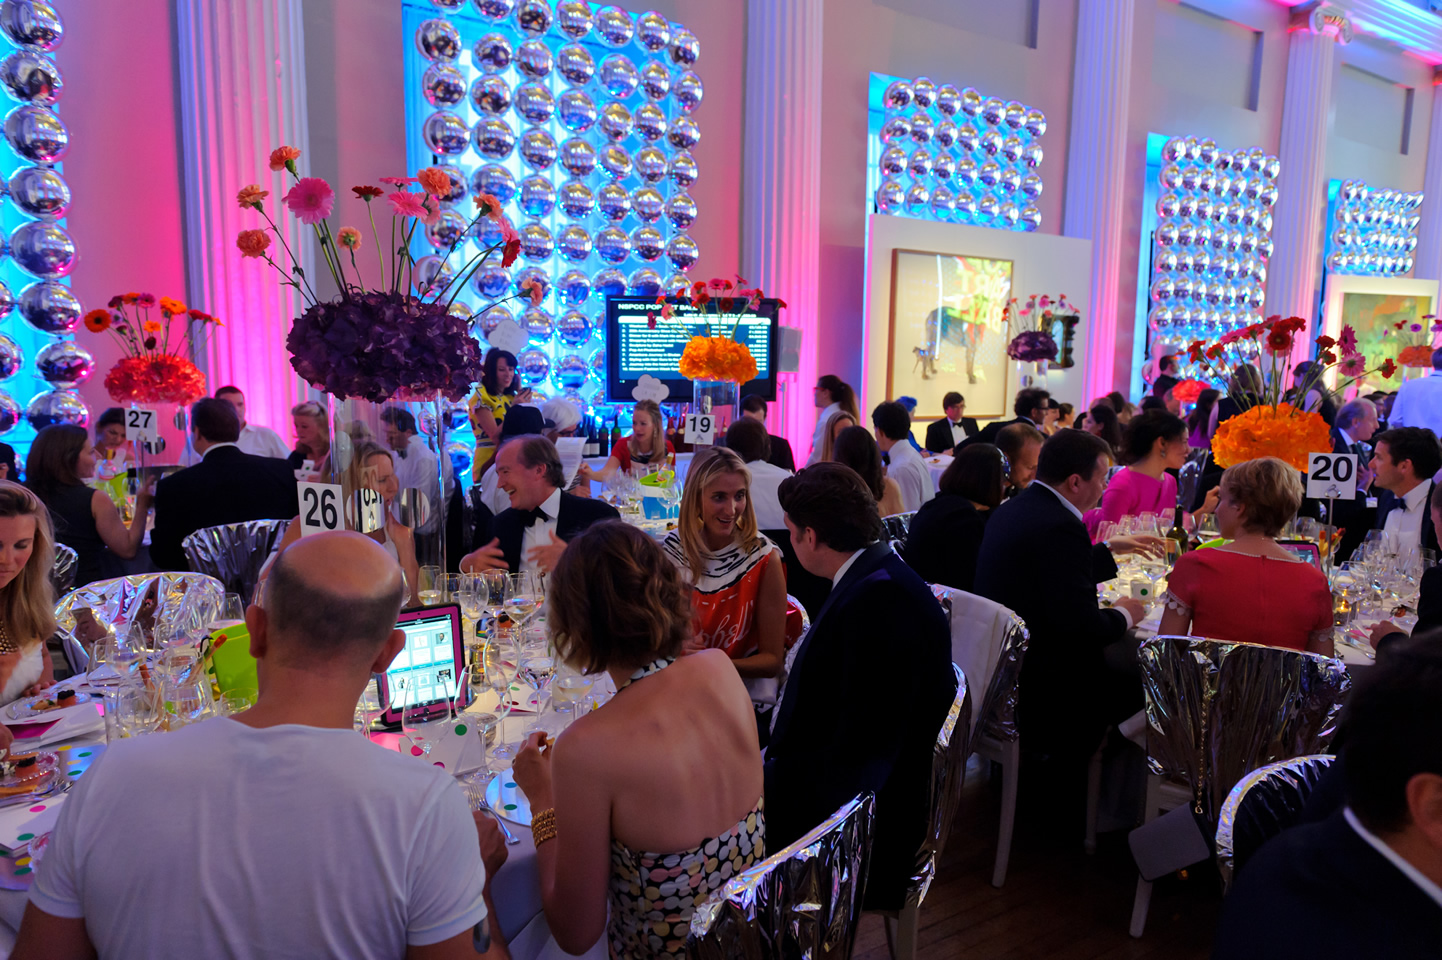 Guests_at_NSPCC_Pop_Art_Ball__Dinner.jpg